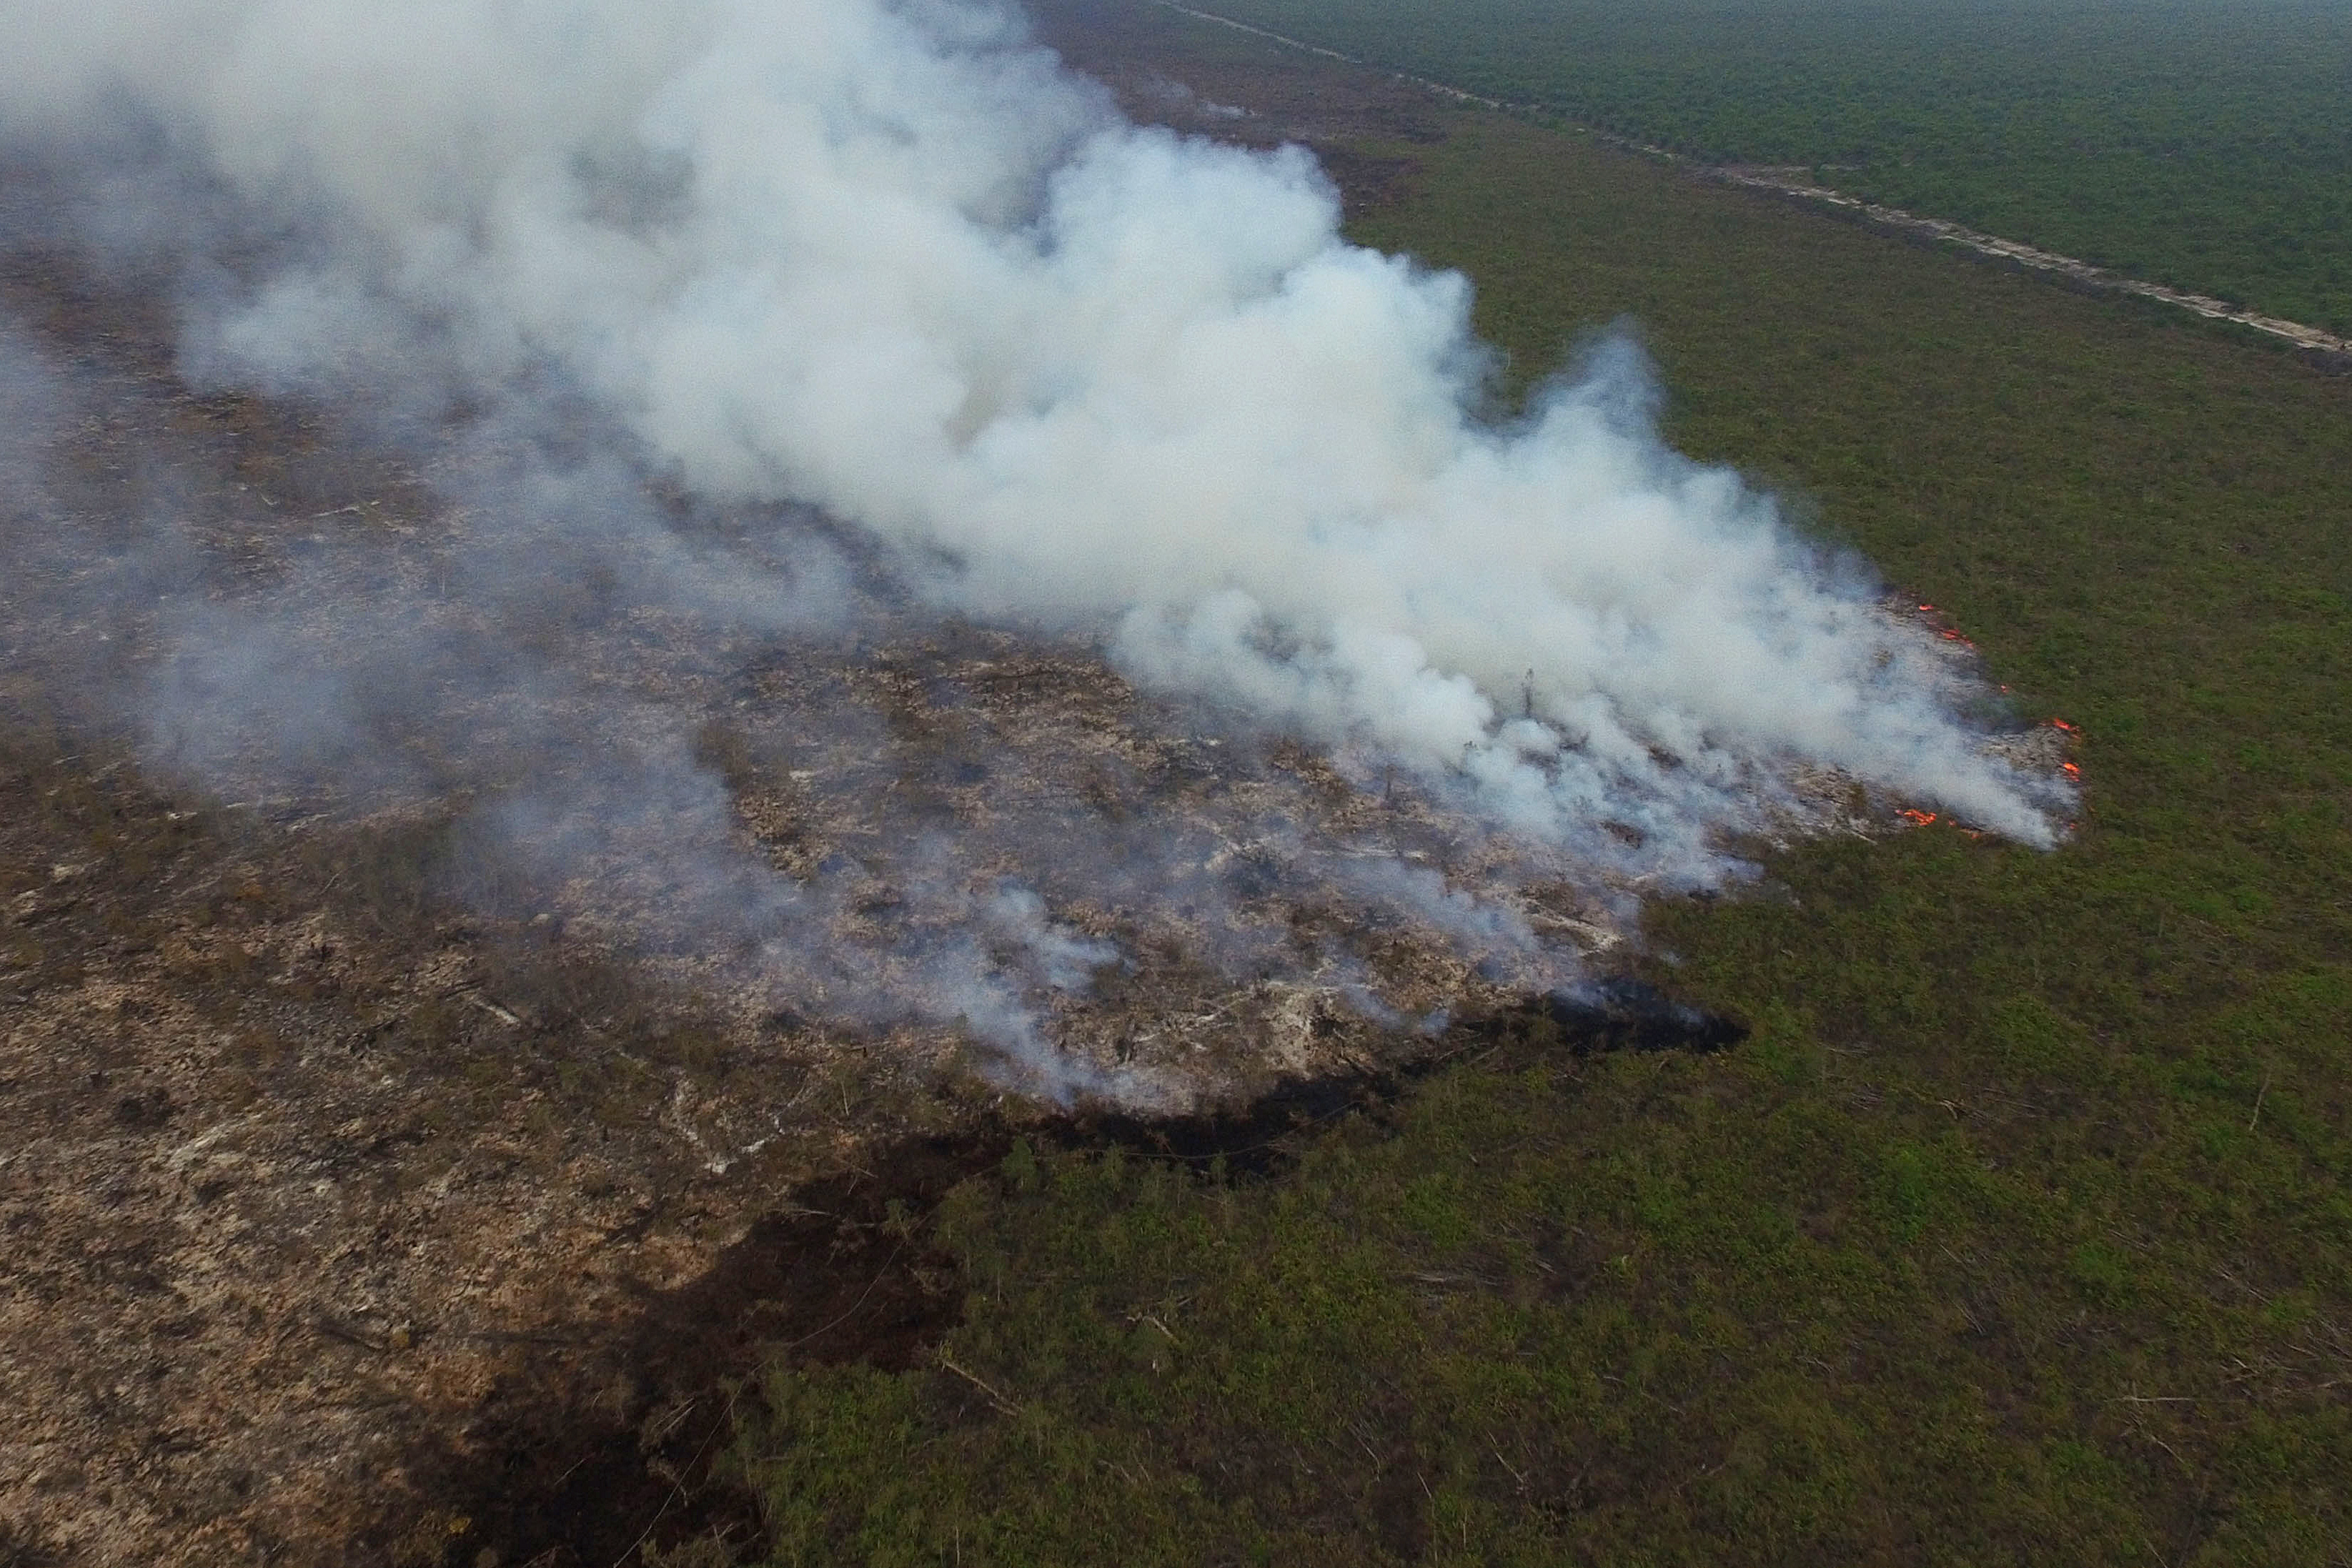 Smoke rises from a forest fire in this aerial photograph taken in Ogan Komering Ilir, South Sumatra province Indonesia, on Oct. 30, 2015